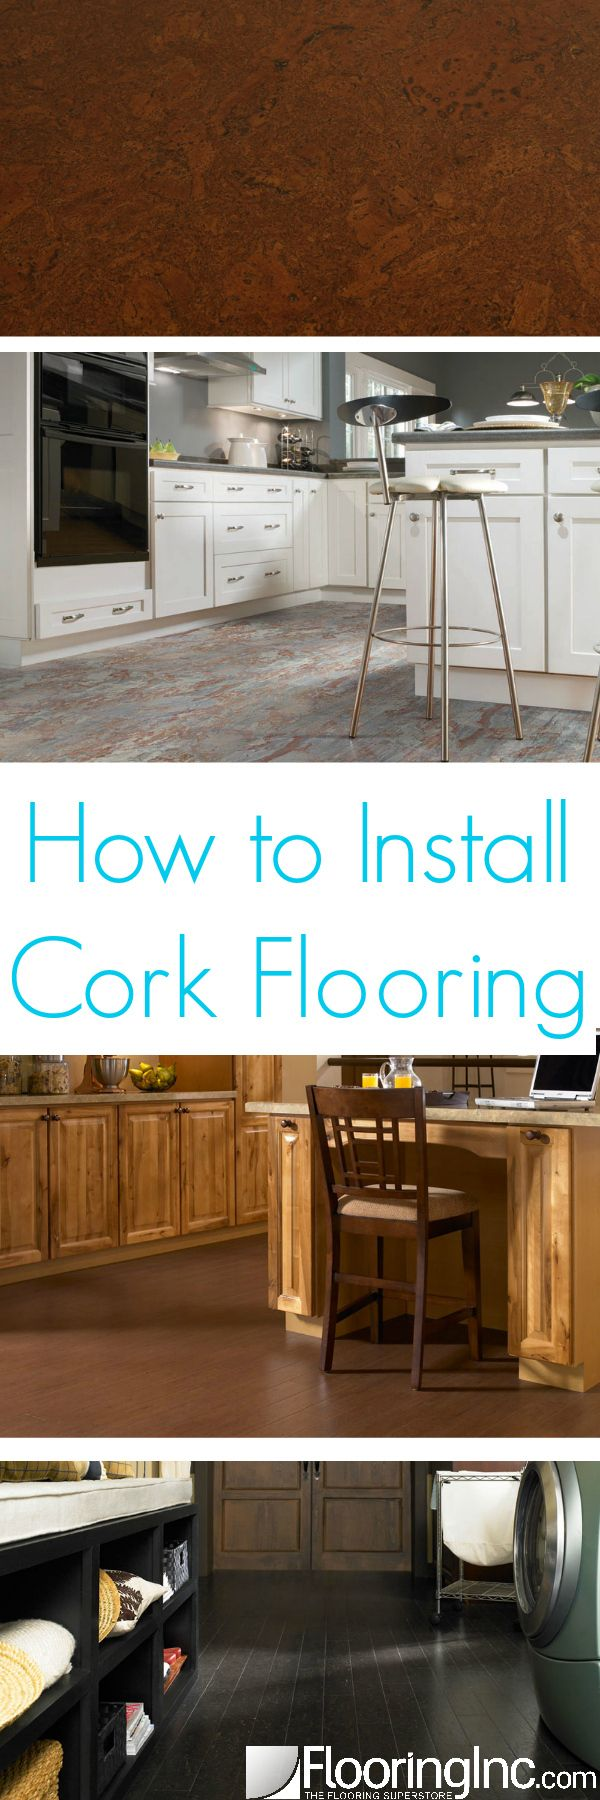 47 best cork flooring images on pinterest flooring ideas bamboo cork flooring is the hottest new trend in home flooring check out how easy dailygadgetfo Choice Image